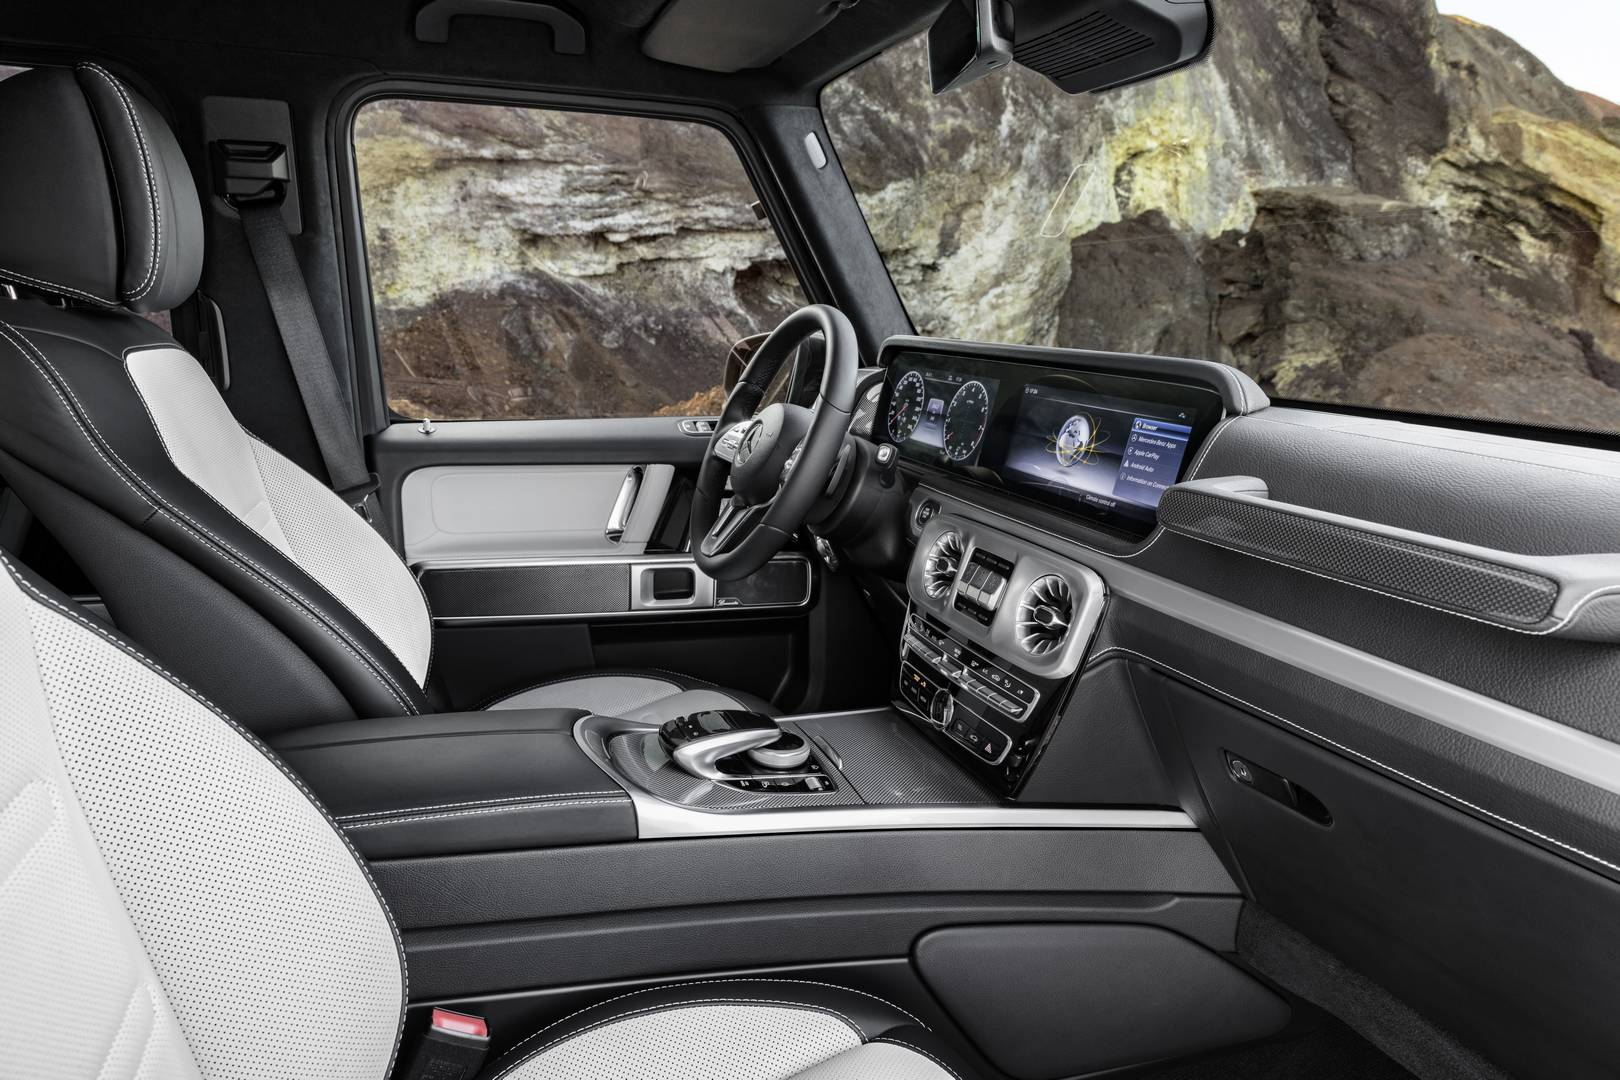 New Mercedes Benz G Cl Interior 1 Of 6 Most Importantly